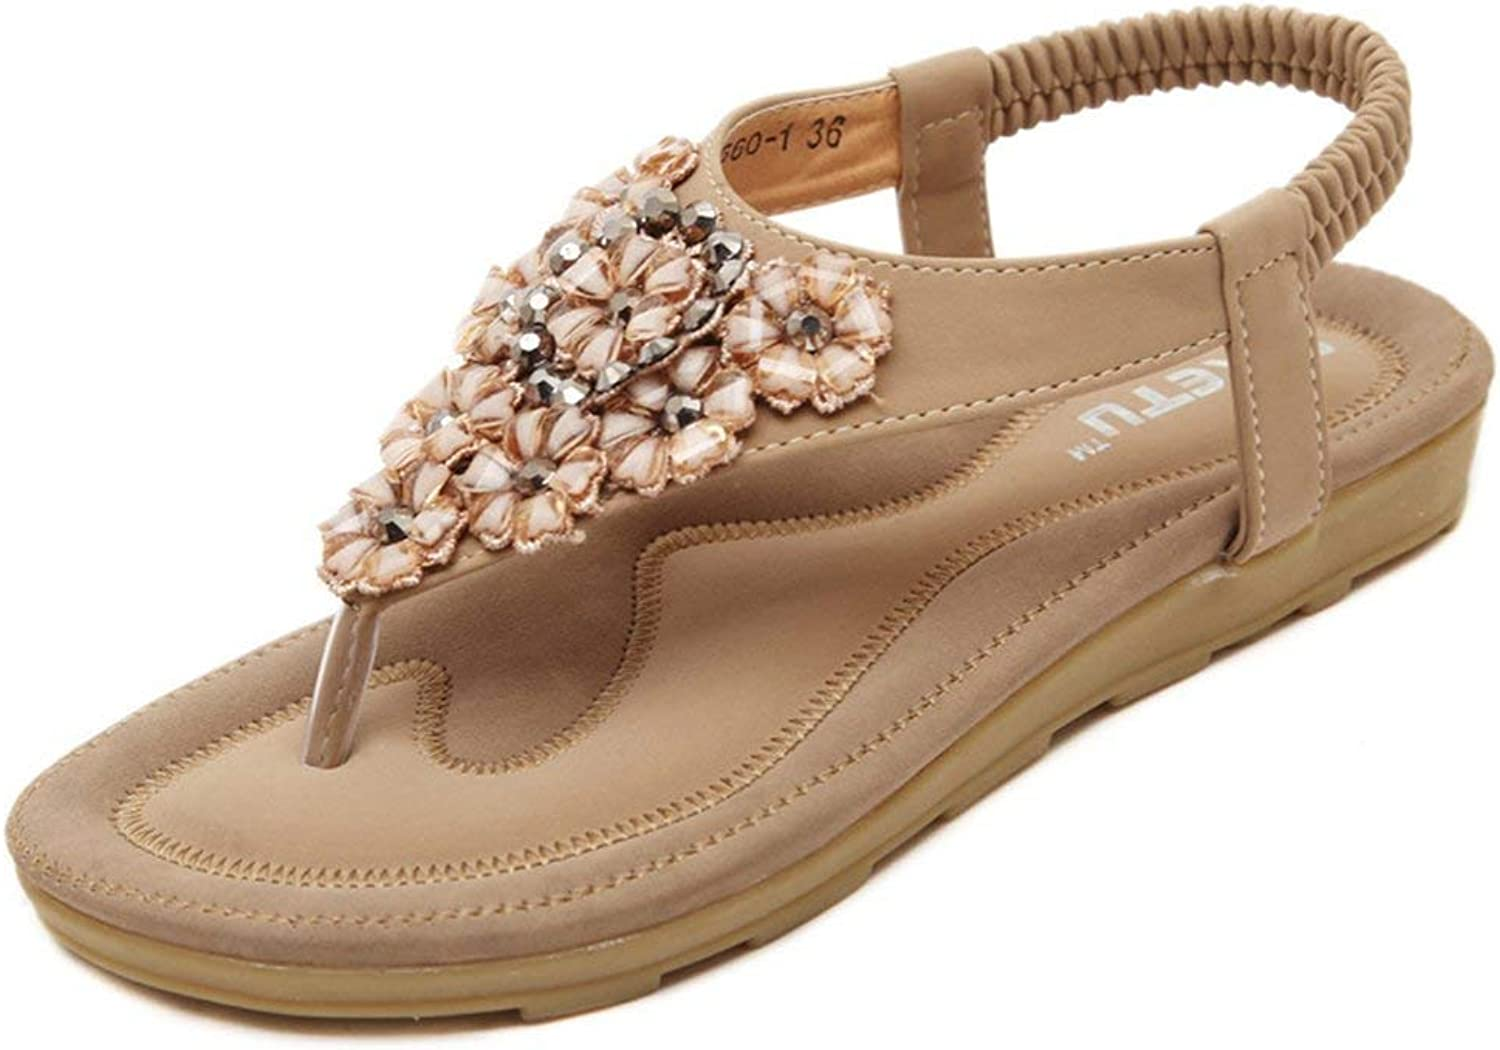 Ghapwe Women's Bohemian Rhinestone Flowers Casual Beach Thongs Flat Sandals Pink 6 M US